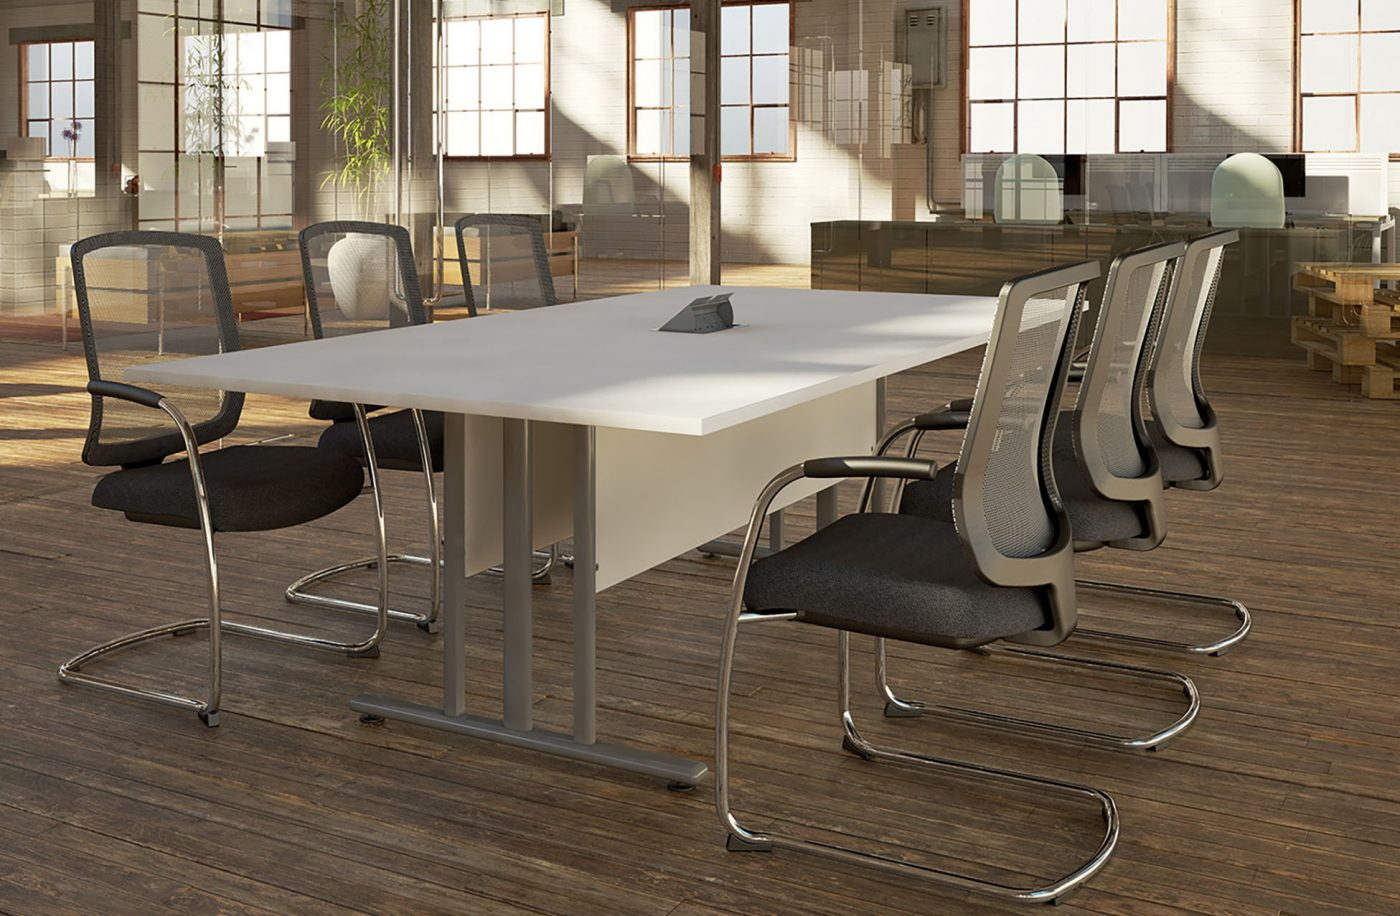 I frame, modesty panel, meeting table, boardroom table, silver metalwork